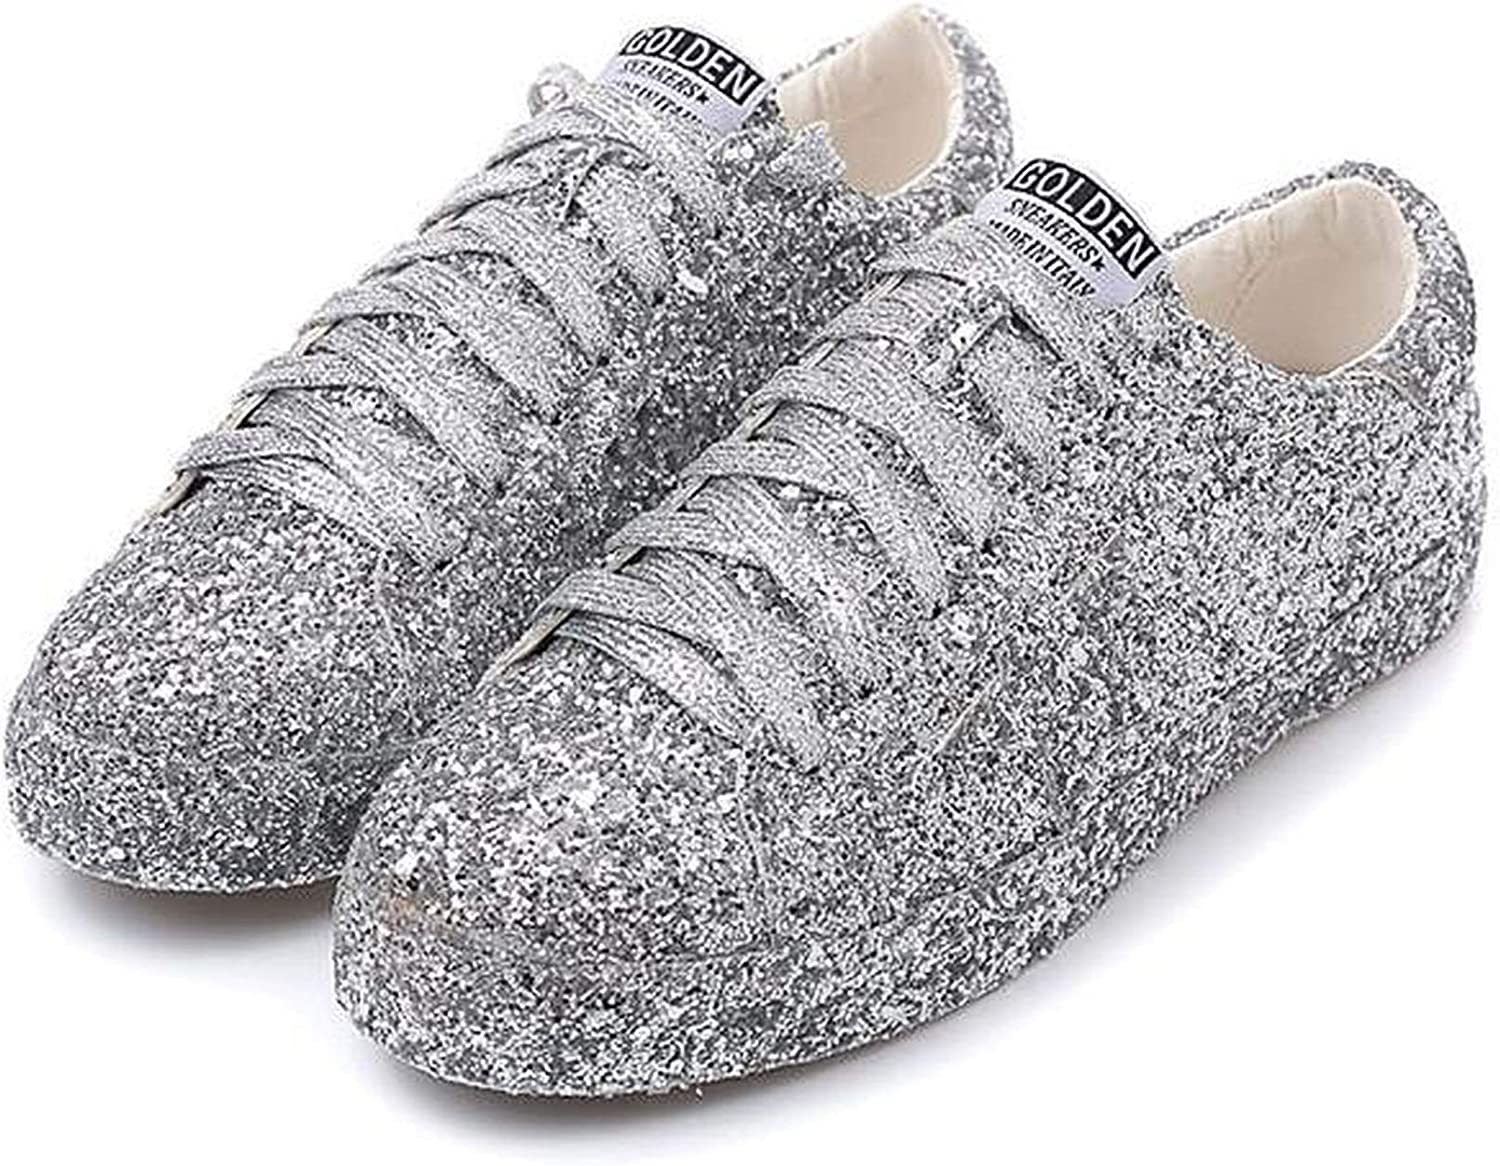 colorful Dream- 2019 Fashion Streets Silver Glitter Sequins lace Round Toe Bling Casual shoes Creepers shoes